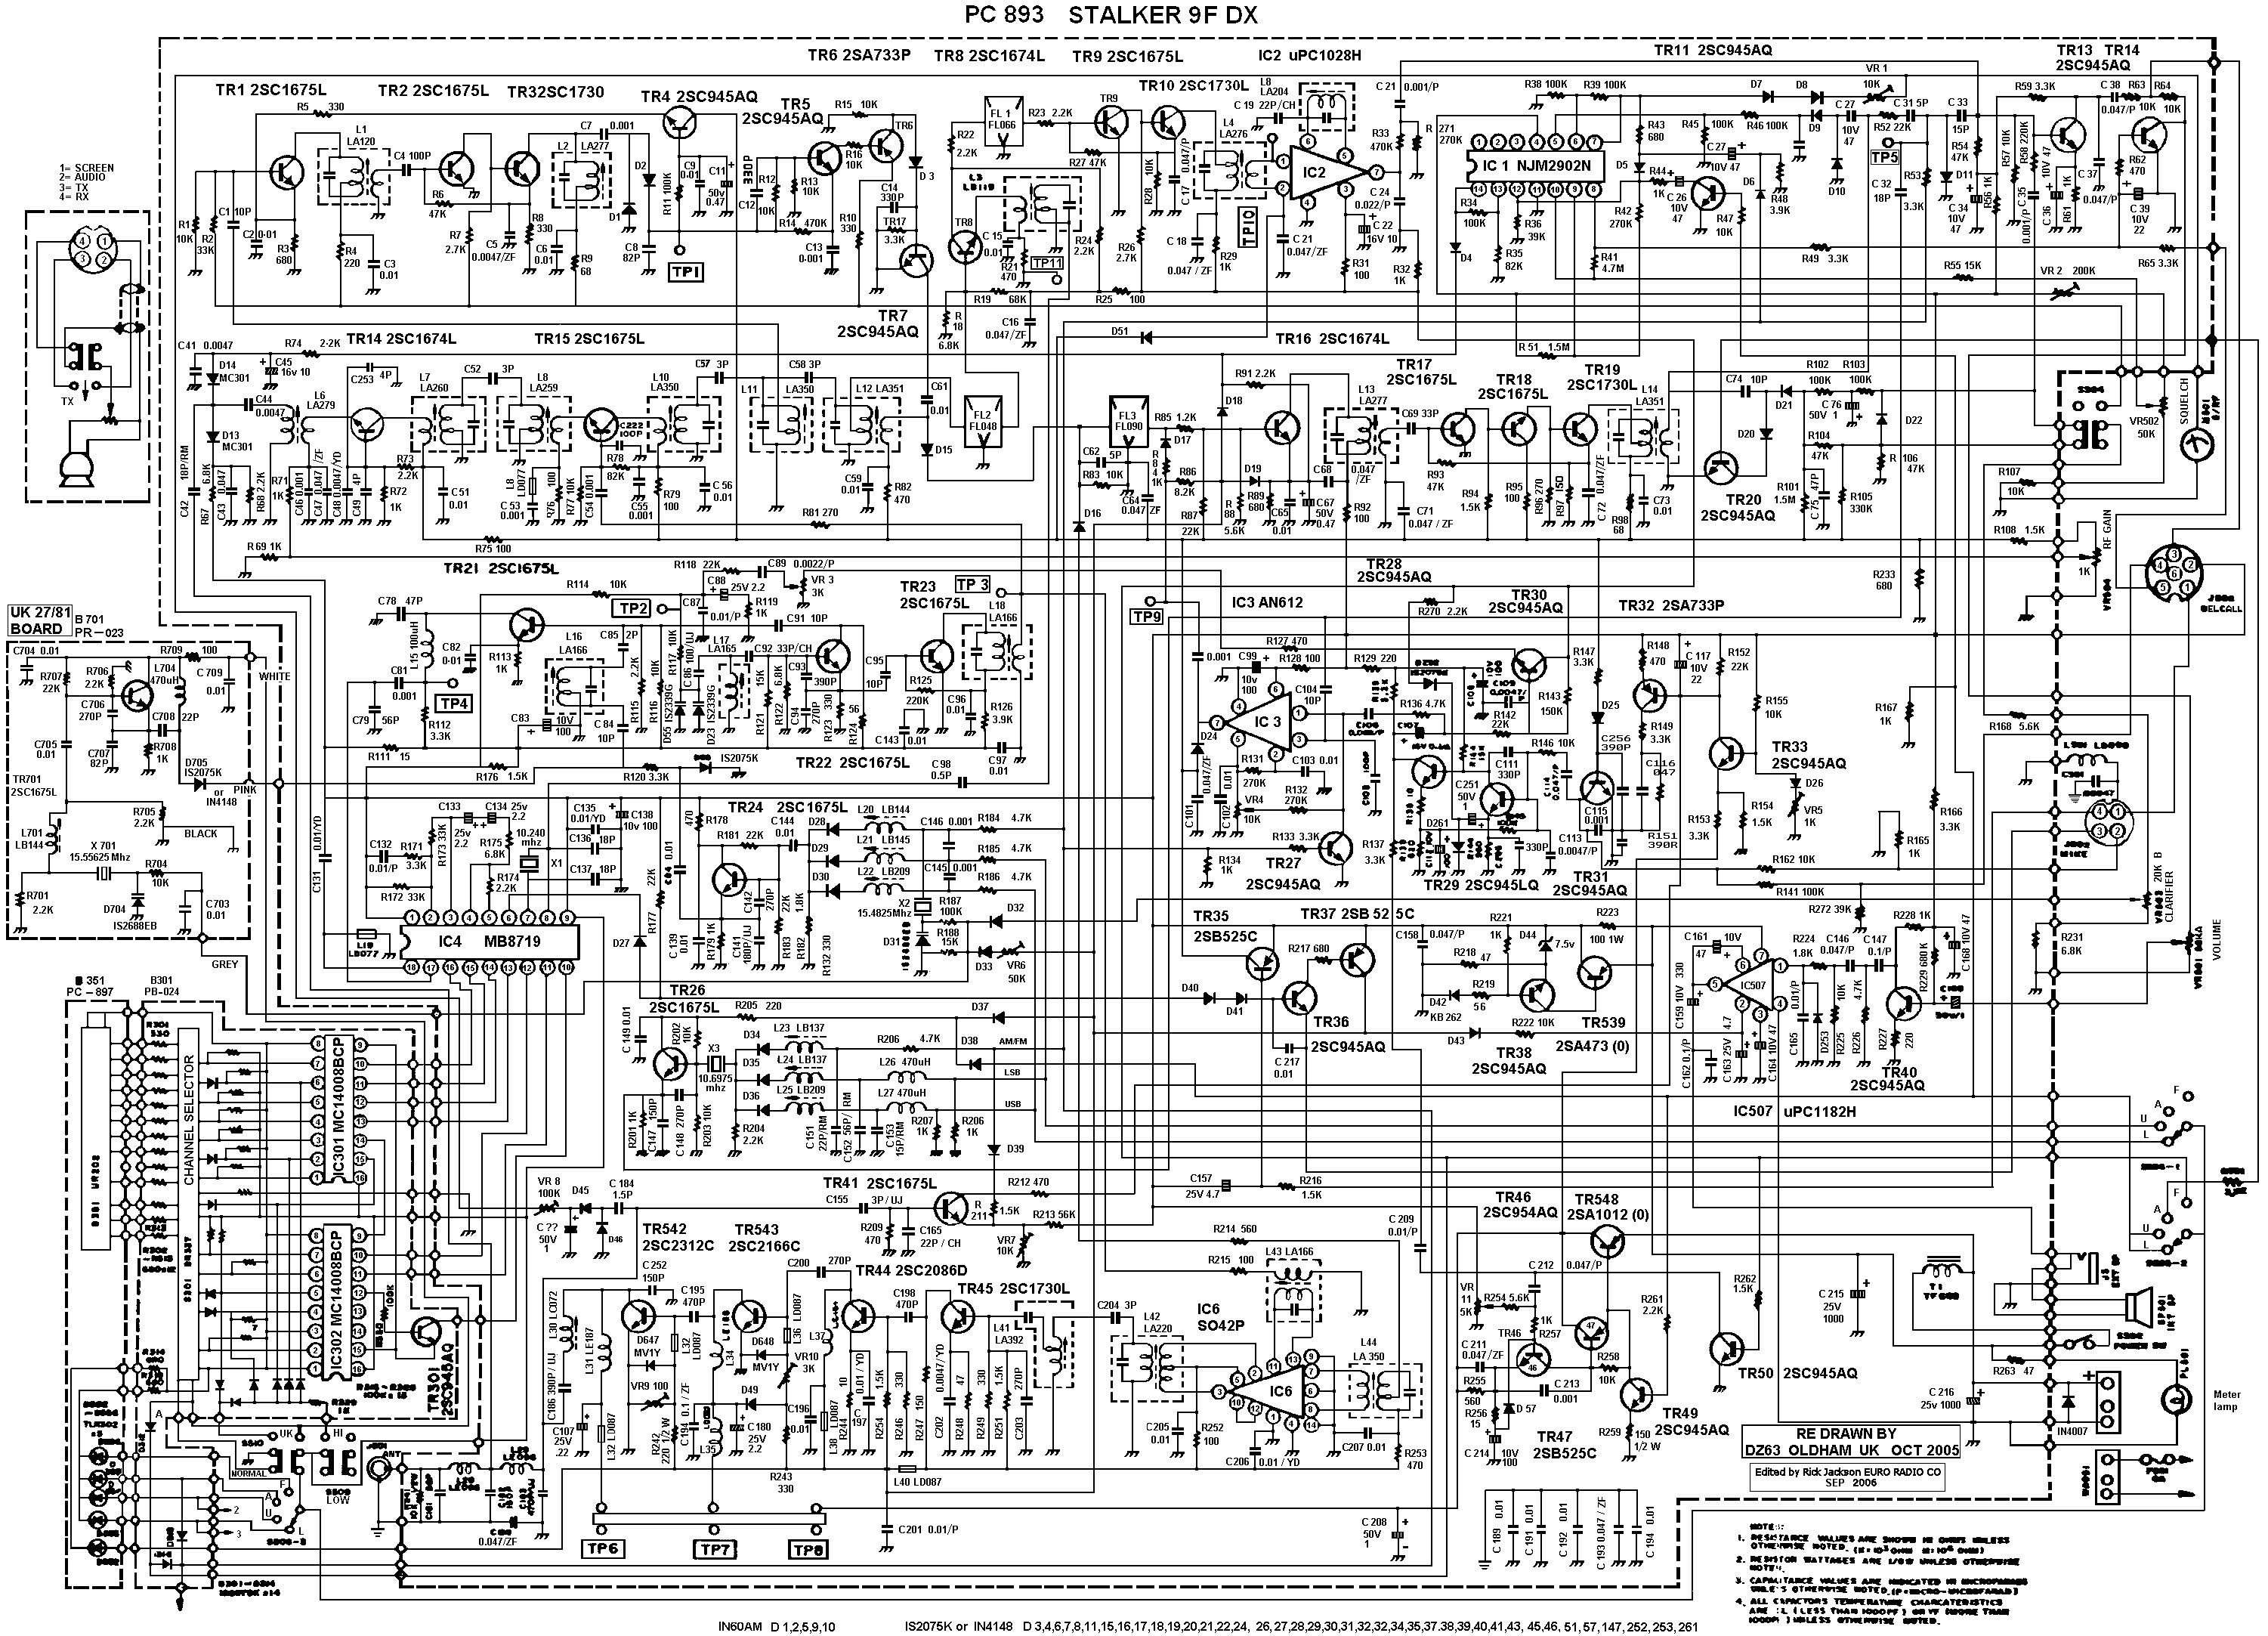 381f91856c8e3d5a8624ba977cca4625 image result for circuit diagram client_iot_平面 pinterest circuit diagram pdf at n-0.co